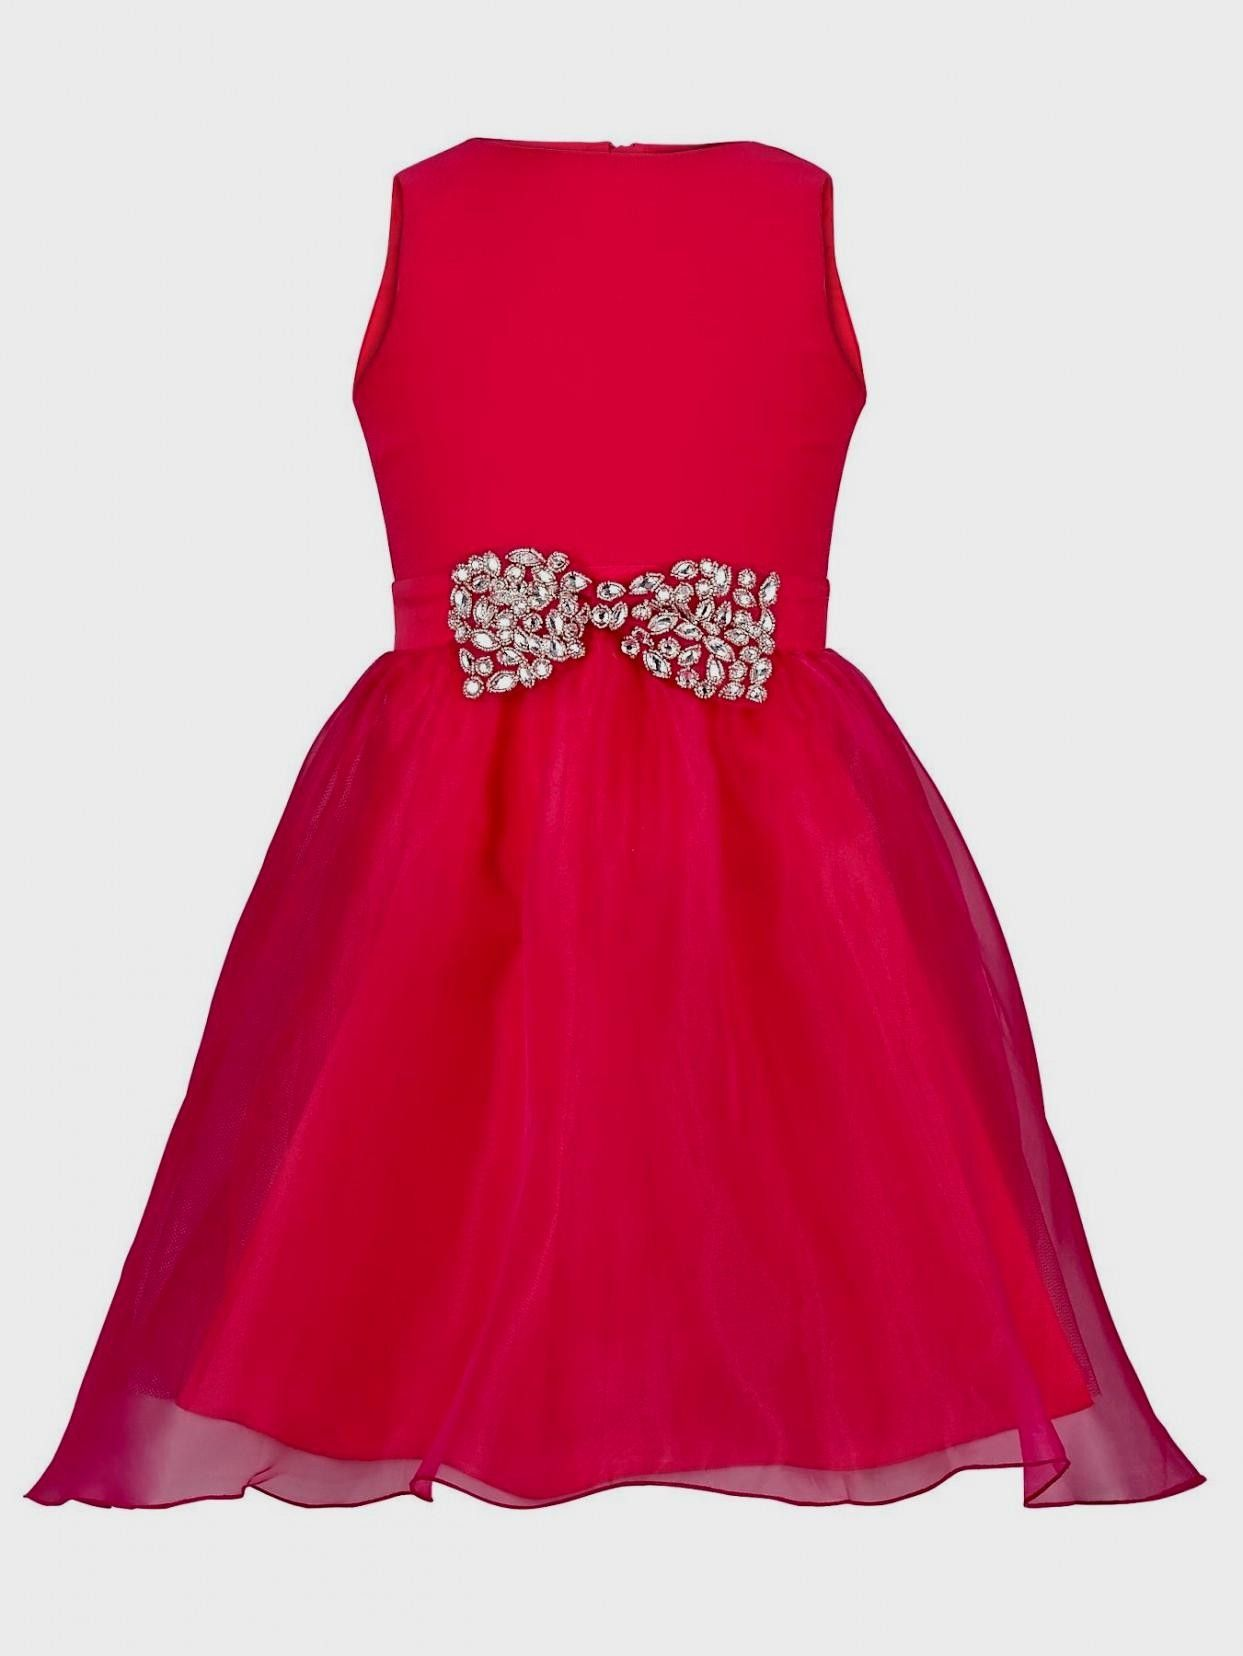 Red Dresses For Girls Age 11 World Dresses With Images Girl